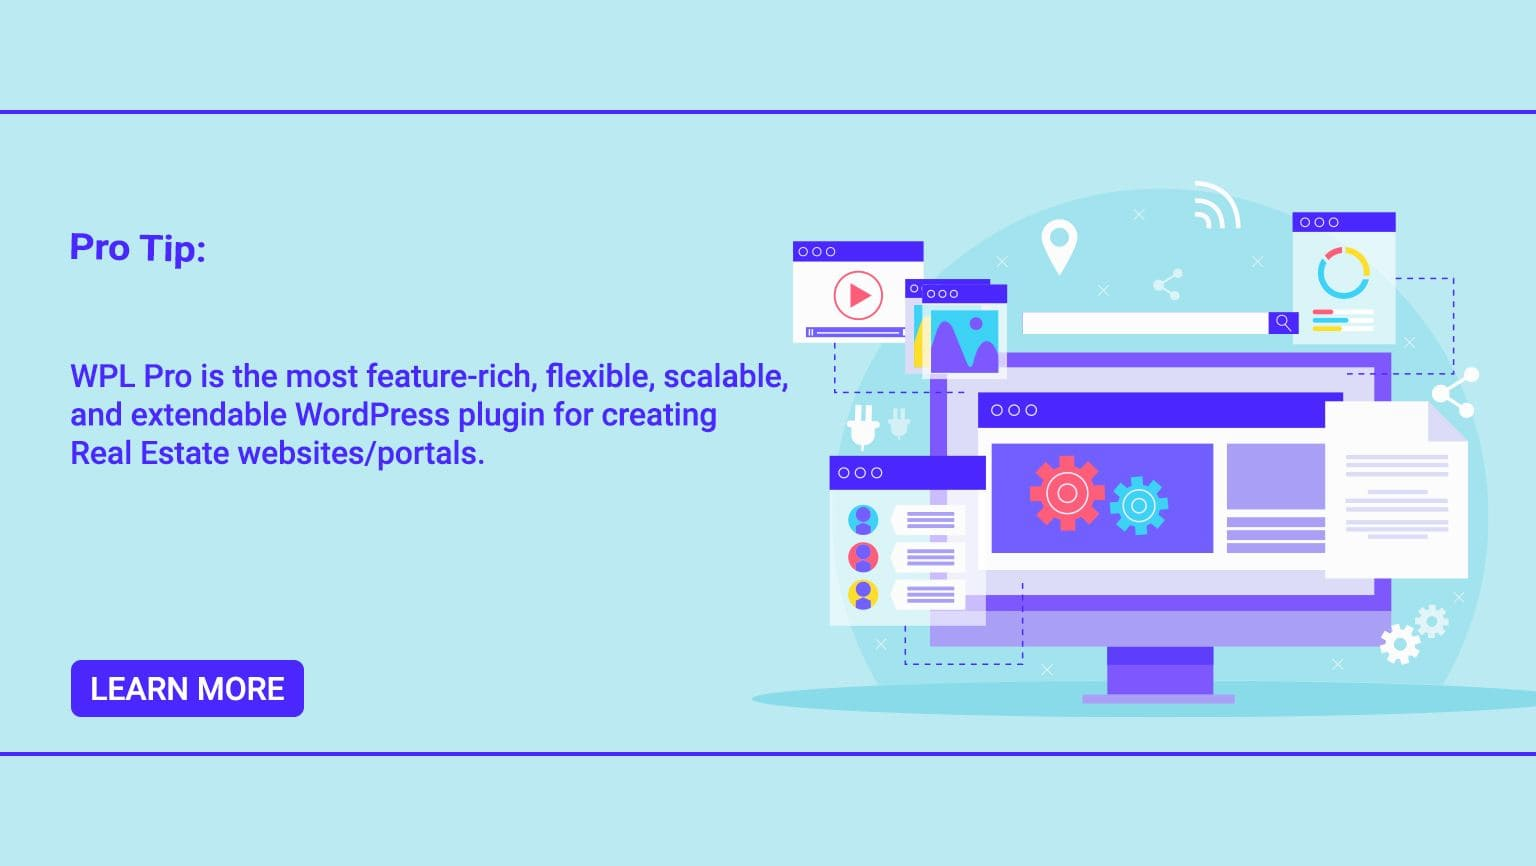 Pro-Tip: WPL Pro is the most feature-rich, flexible, scalable and extendable WordPress plugin for creating real estate websites / portals.